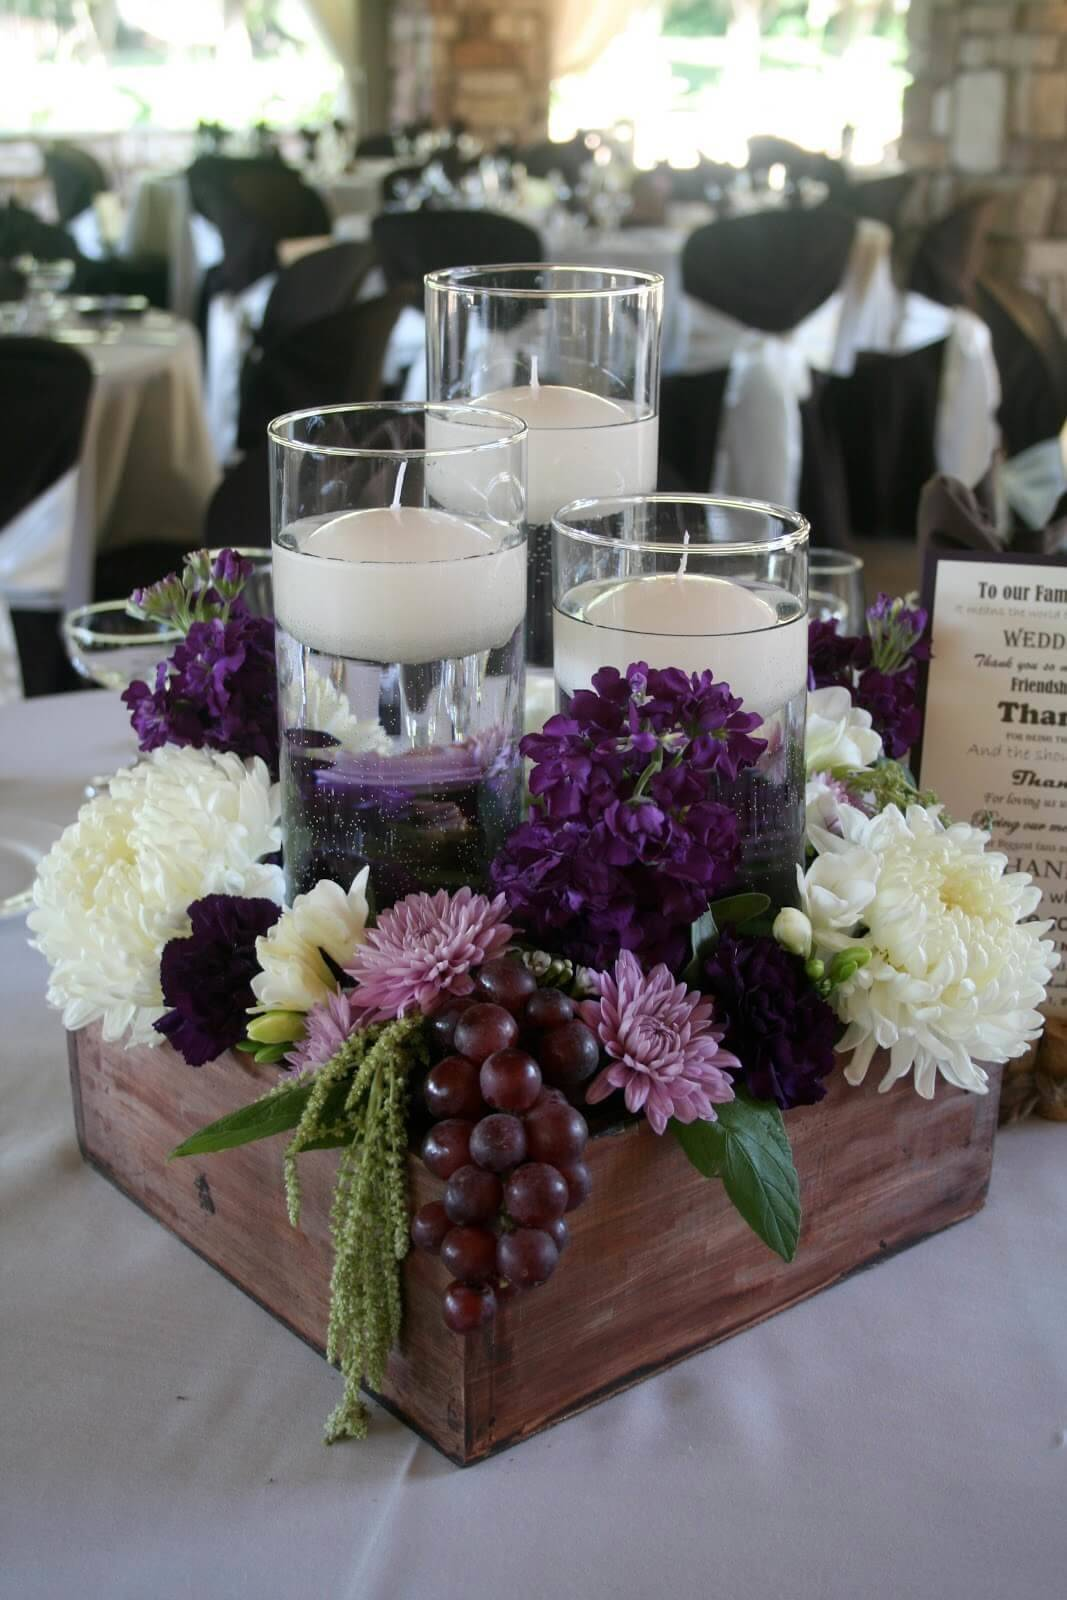 Best Rustic Wooden Box Centerpiece Ideas Designs